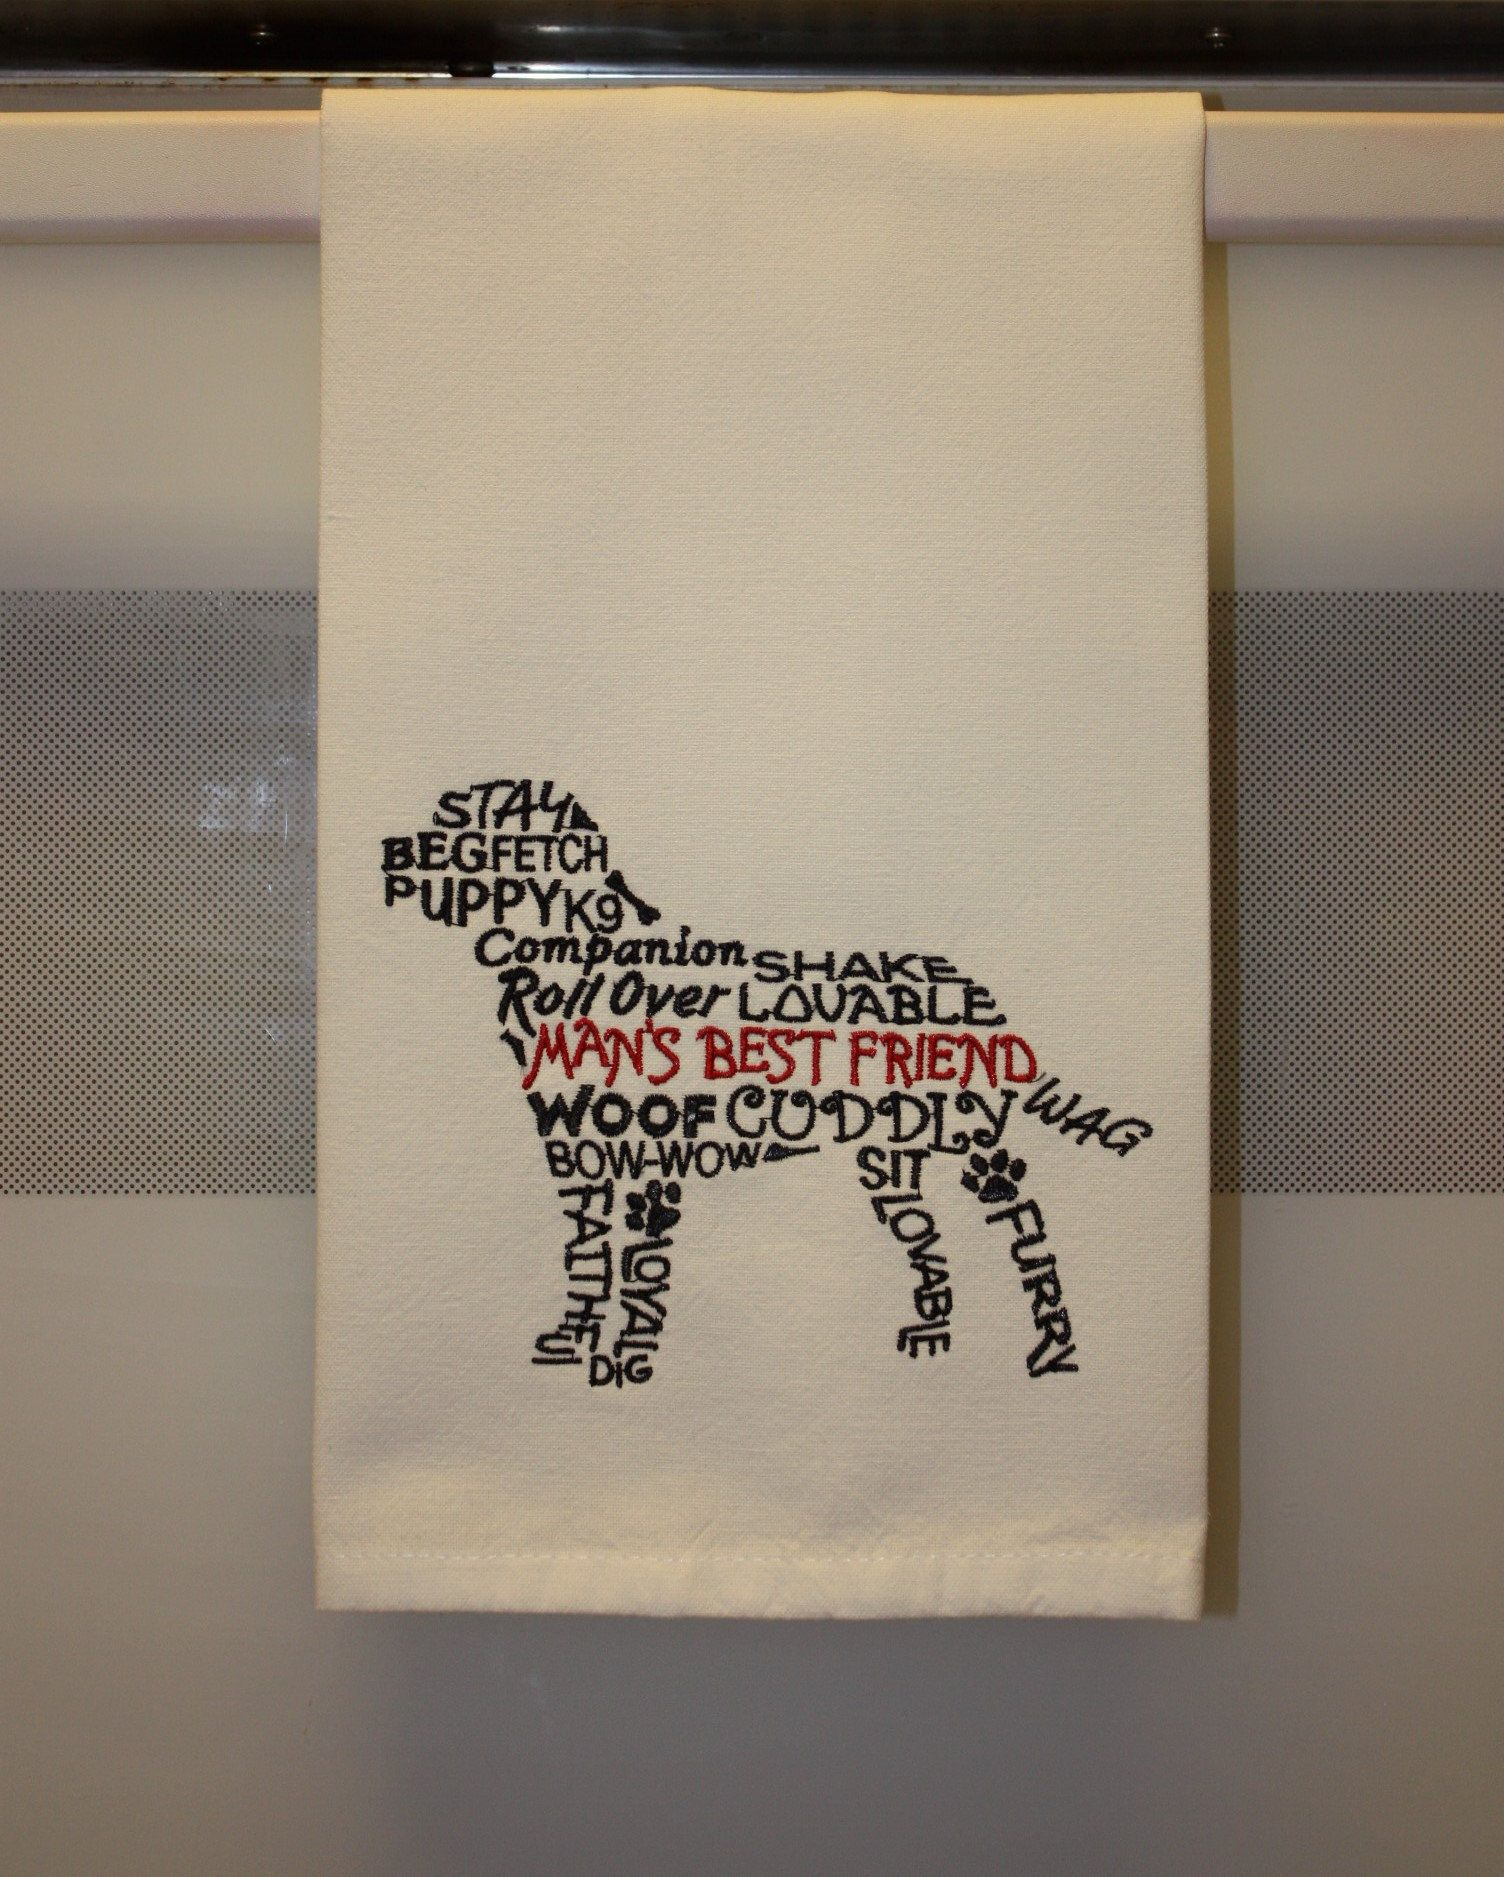 Embroidered Man S Best Friend Dog Words Dog Embroidered Kitchen Tea Towel By Lindasembroideryshop On Etsy Dog Words Kitchen Tea Towels Embroidered